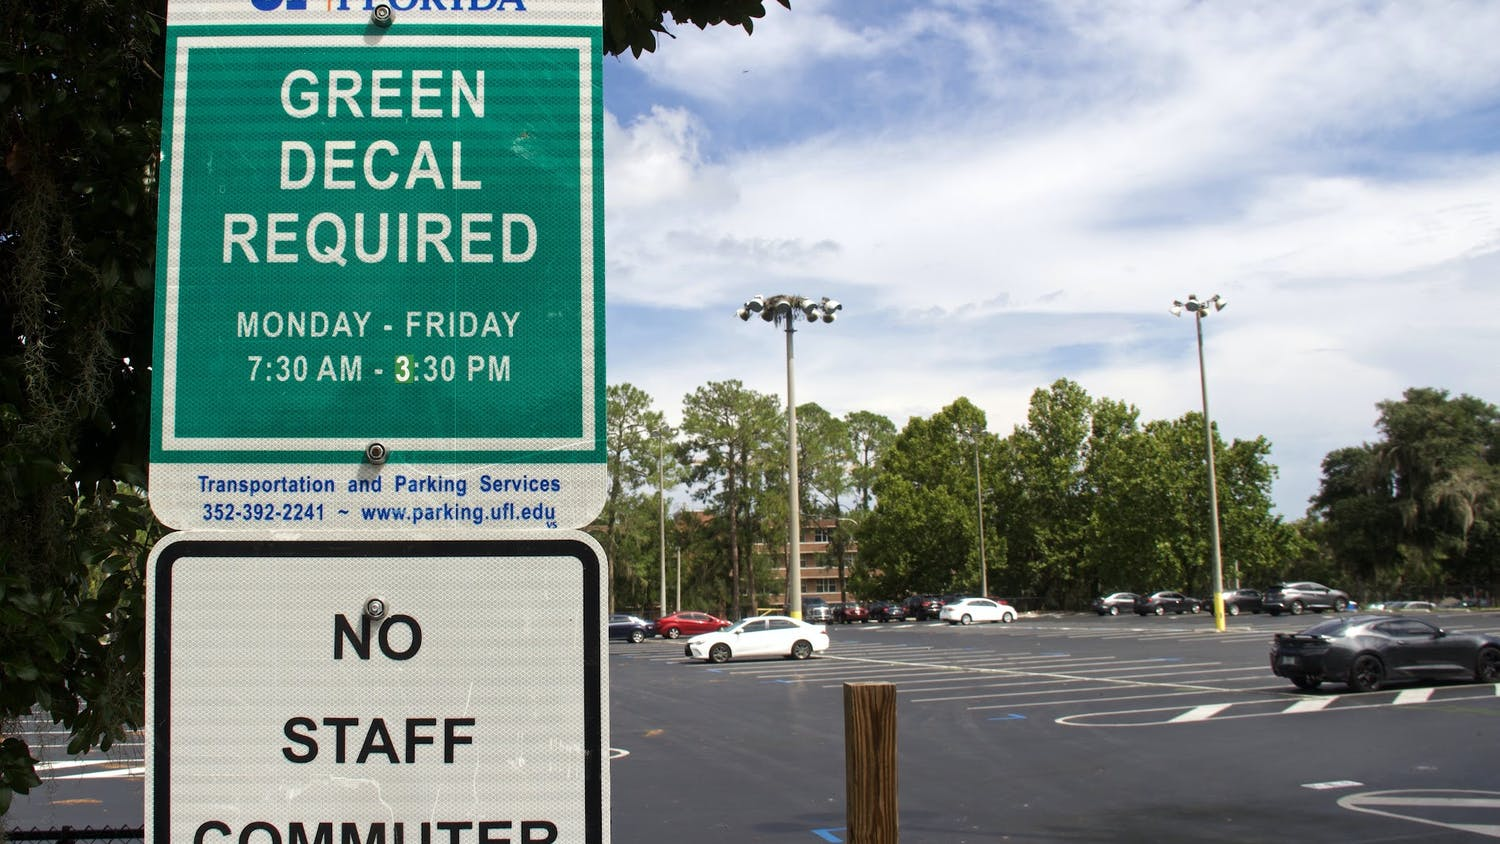 The parking lot next to Flavet Field at UF, shown on Thursday, Sept. 2, 2021, was changed to a green decal only location. This change affects the ability of students with Park and Ride decals to park on campus. (Photo by Kiara Cline)